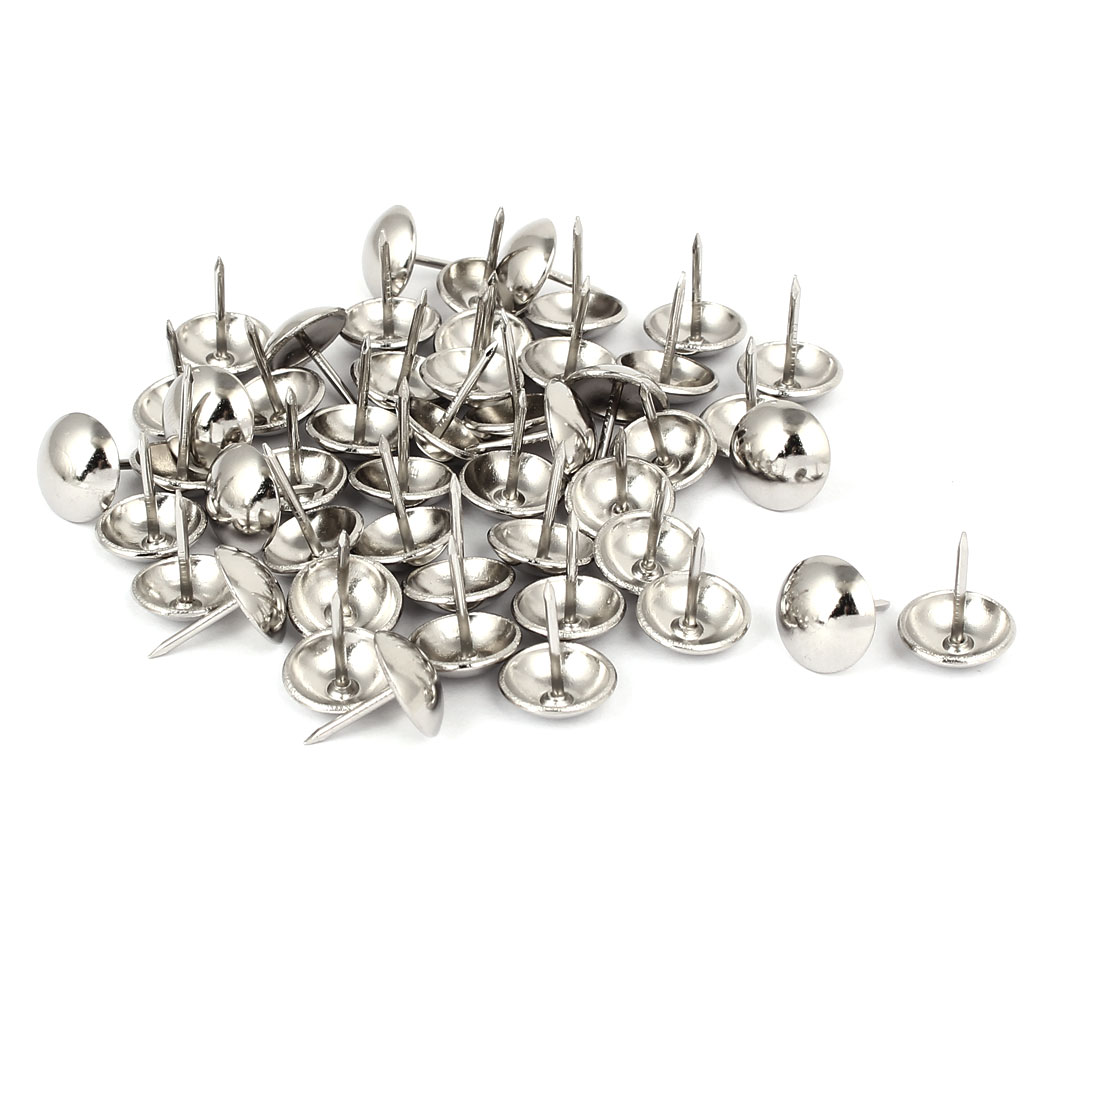 Home Metal Round Domed Head Upholstery Tack Nail Silver Tone 14mm Dia 50pcs